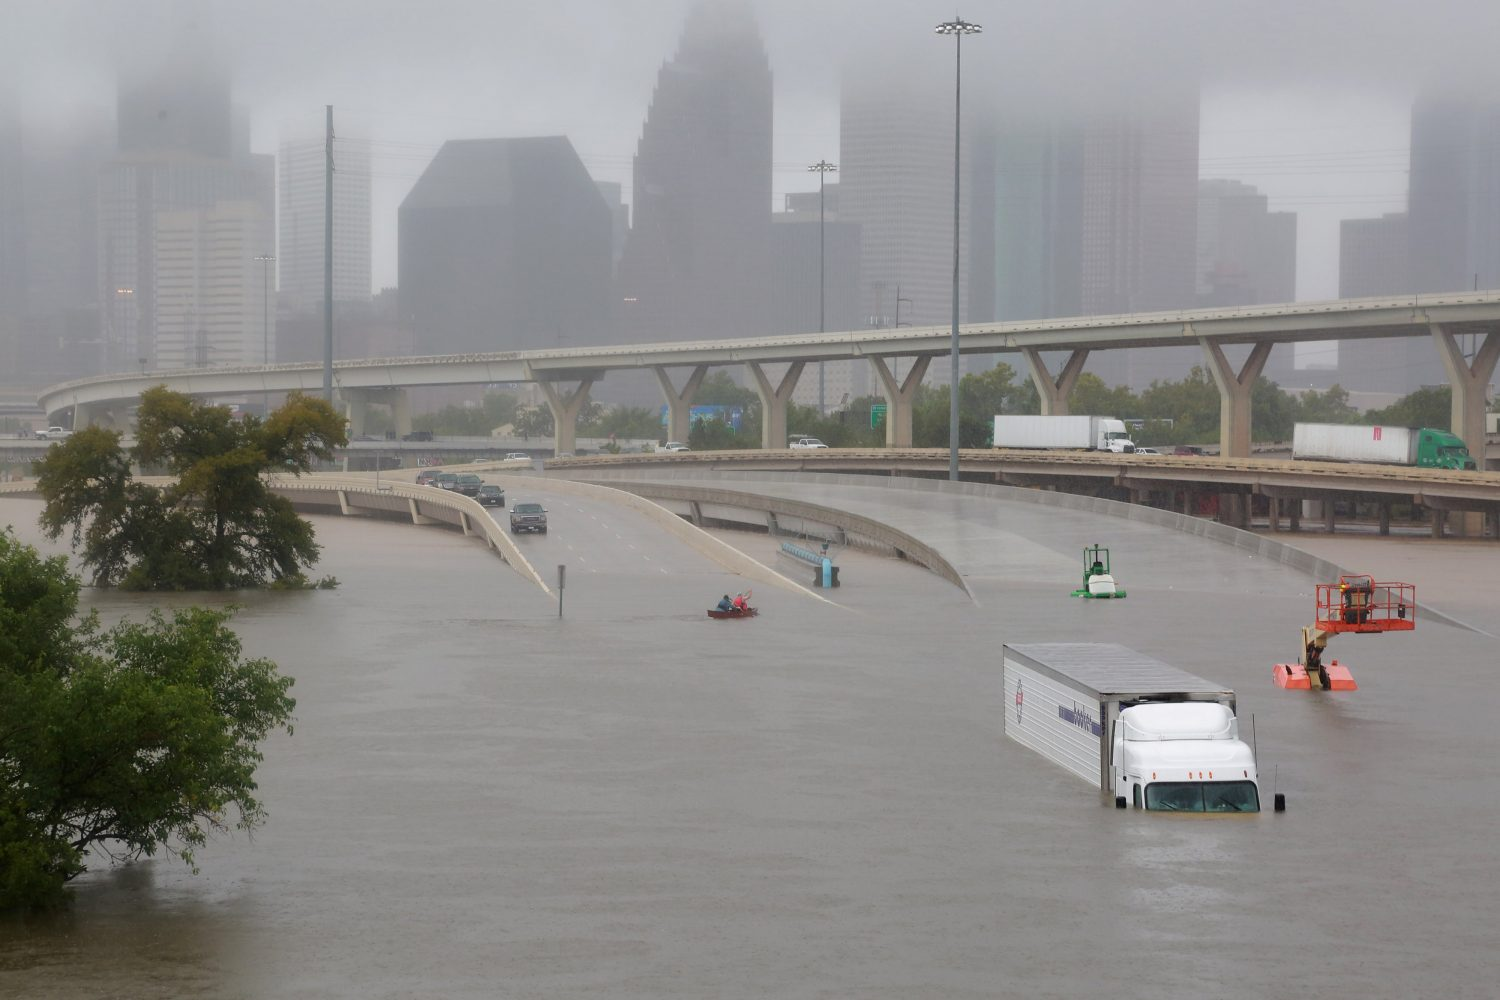 Interstate highway 45 is submerged from the effects of Hurricane Harvey seen during widespread flooding in Houston, Texas, U.S. August 27, 2017. Photo by Richard Carson/REUTERS